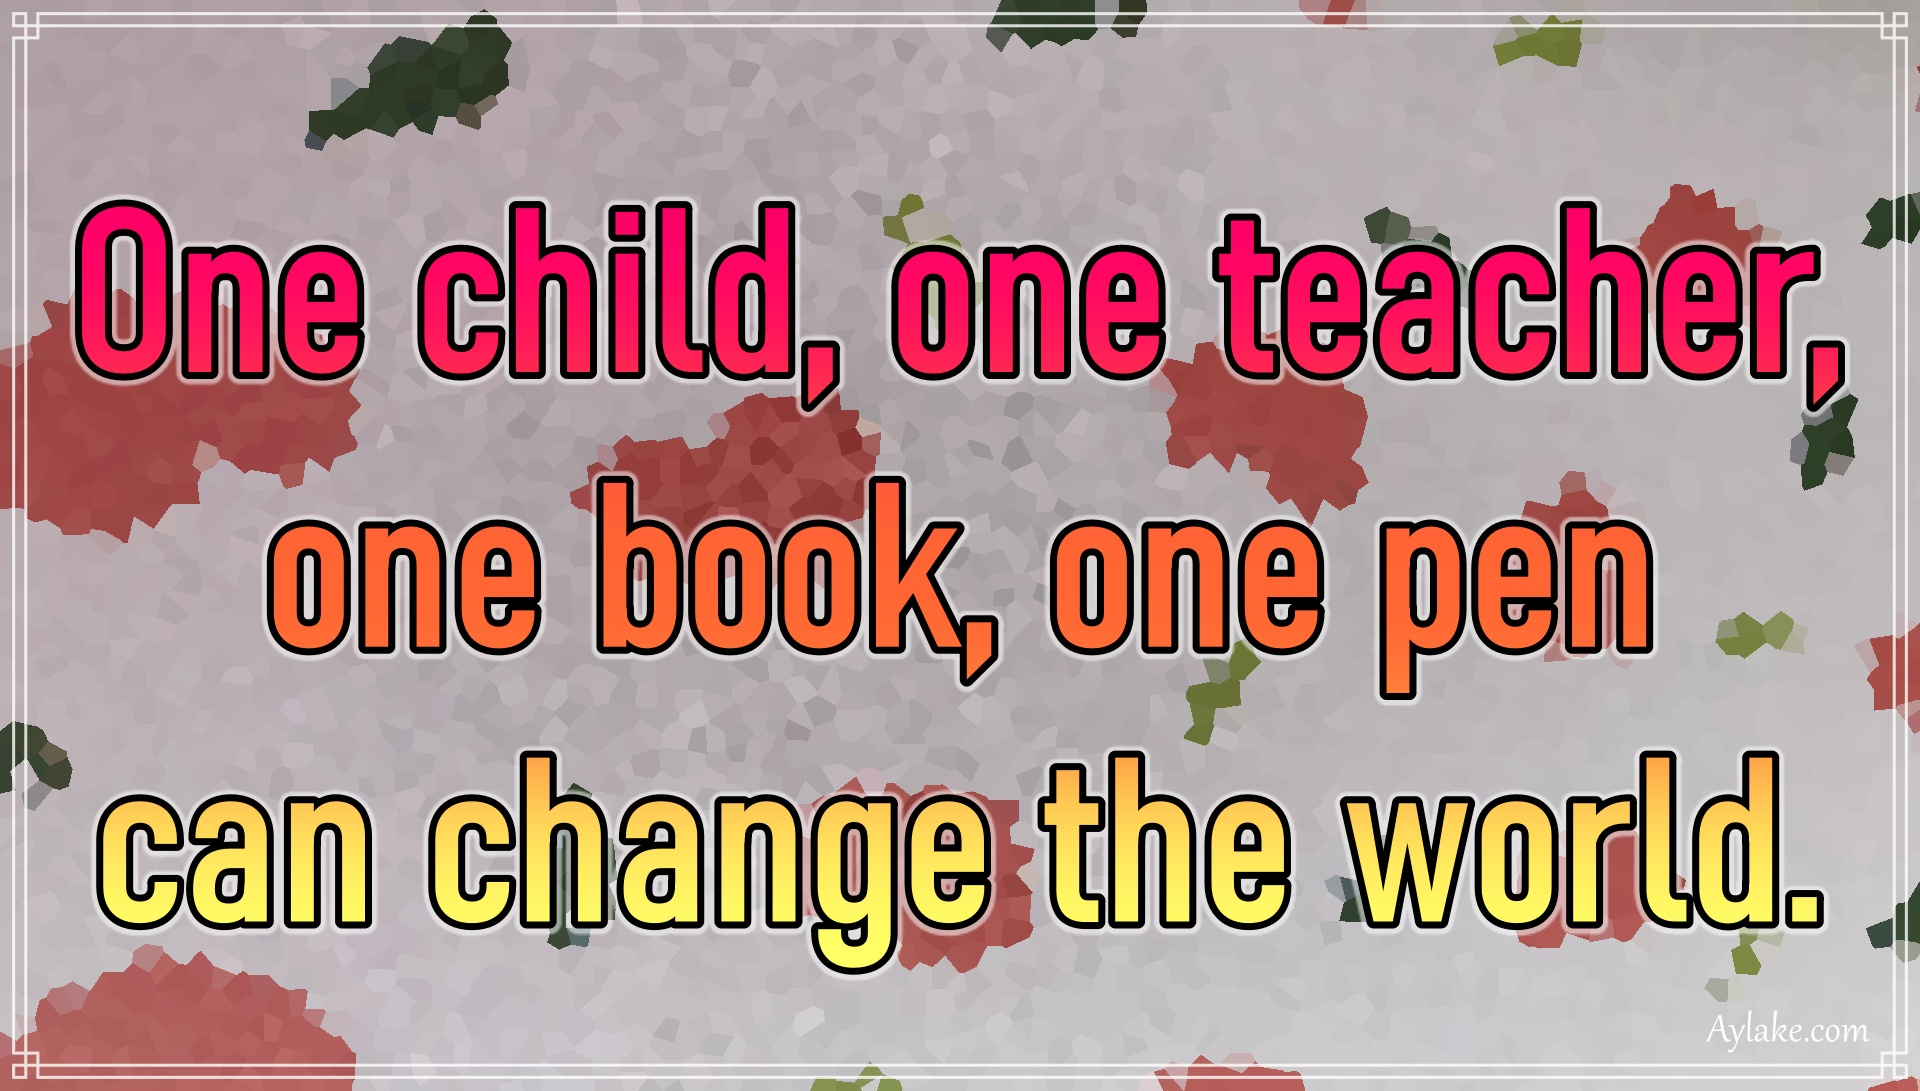 Famous quotes One child one teacher one book one pen can change the world Aylake